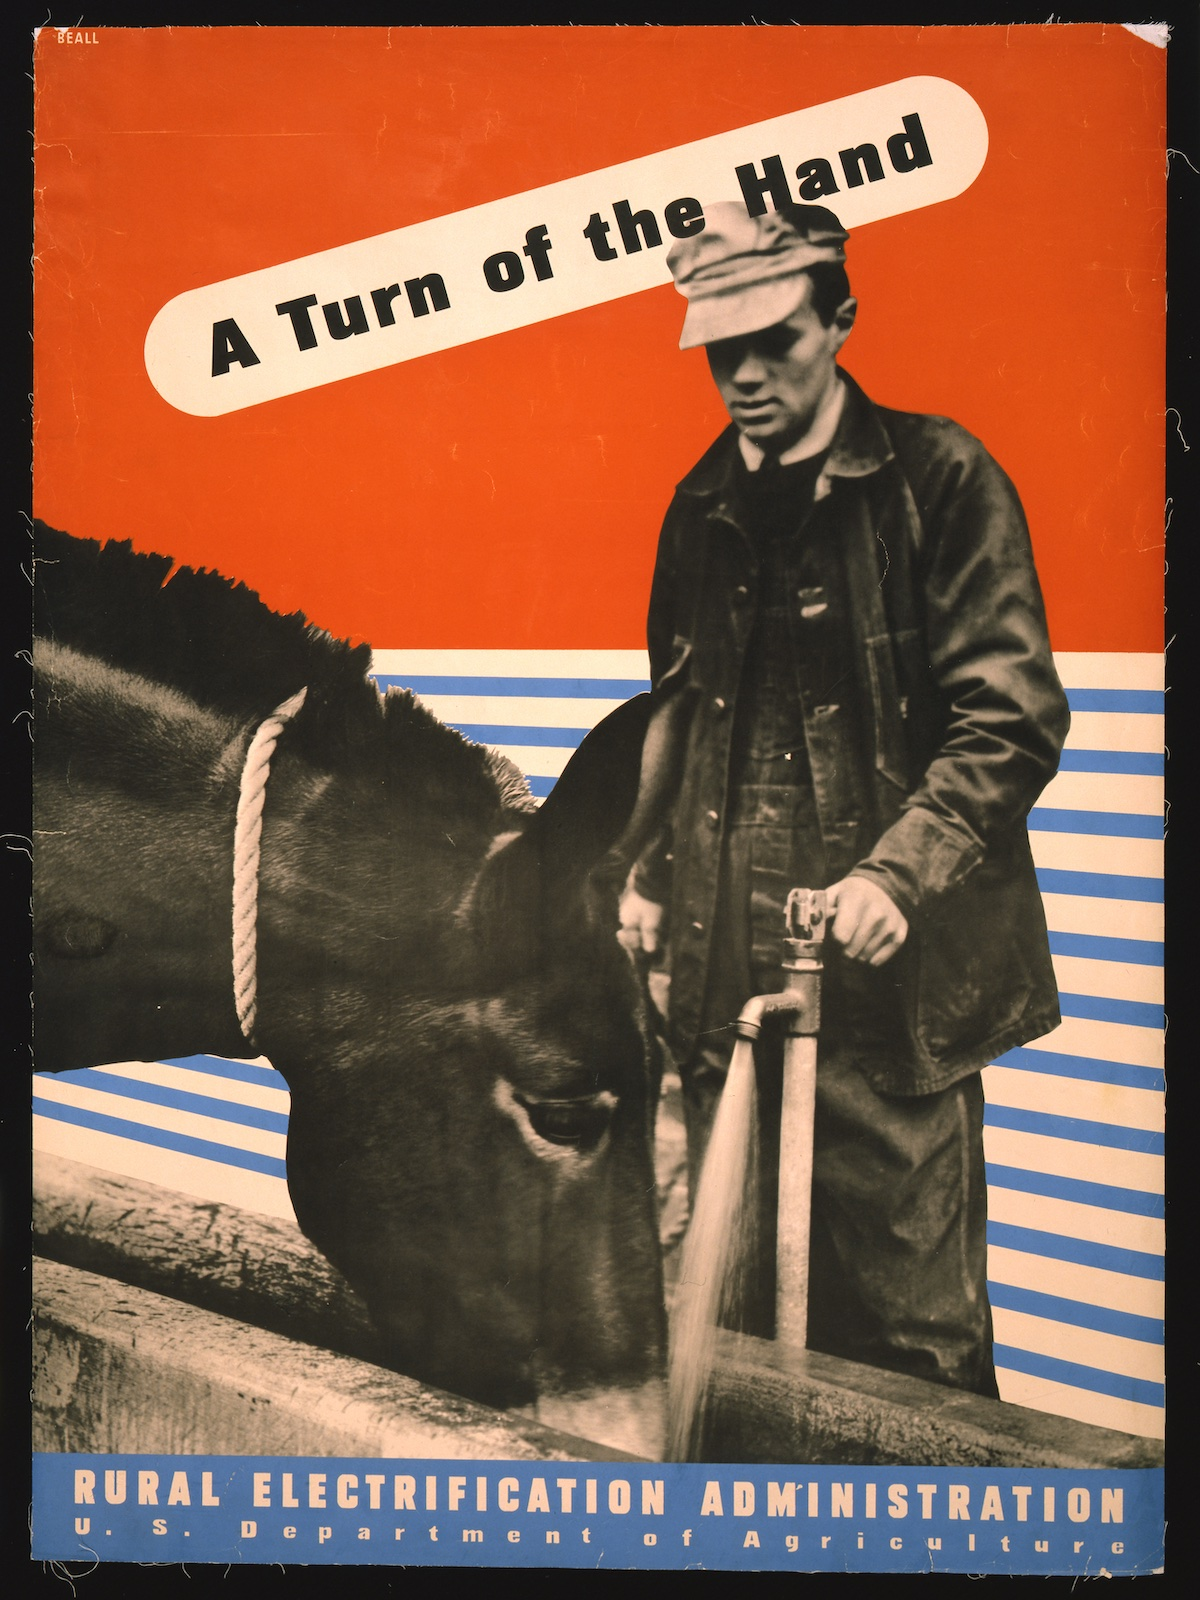 'A turn of the hand' Rural Electrification poster by Lester Beall - 1930